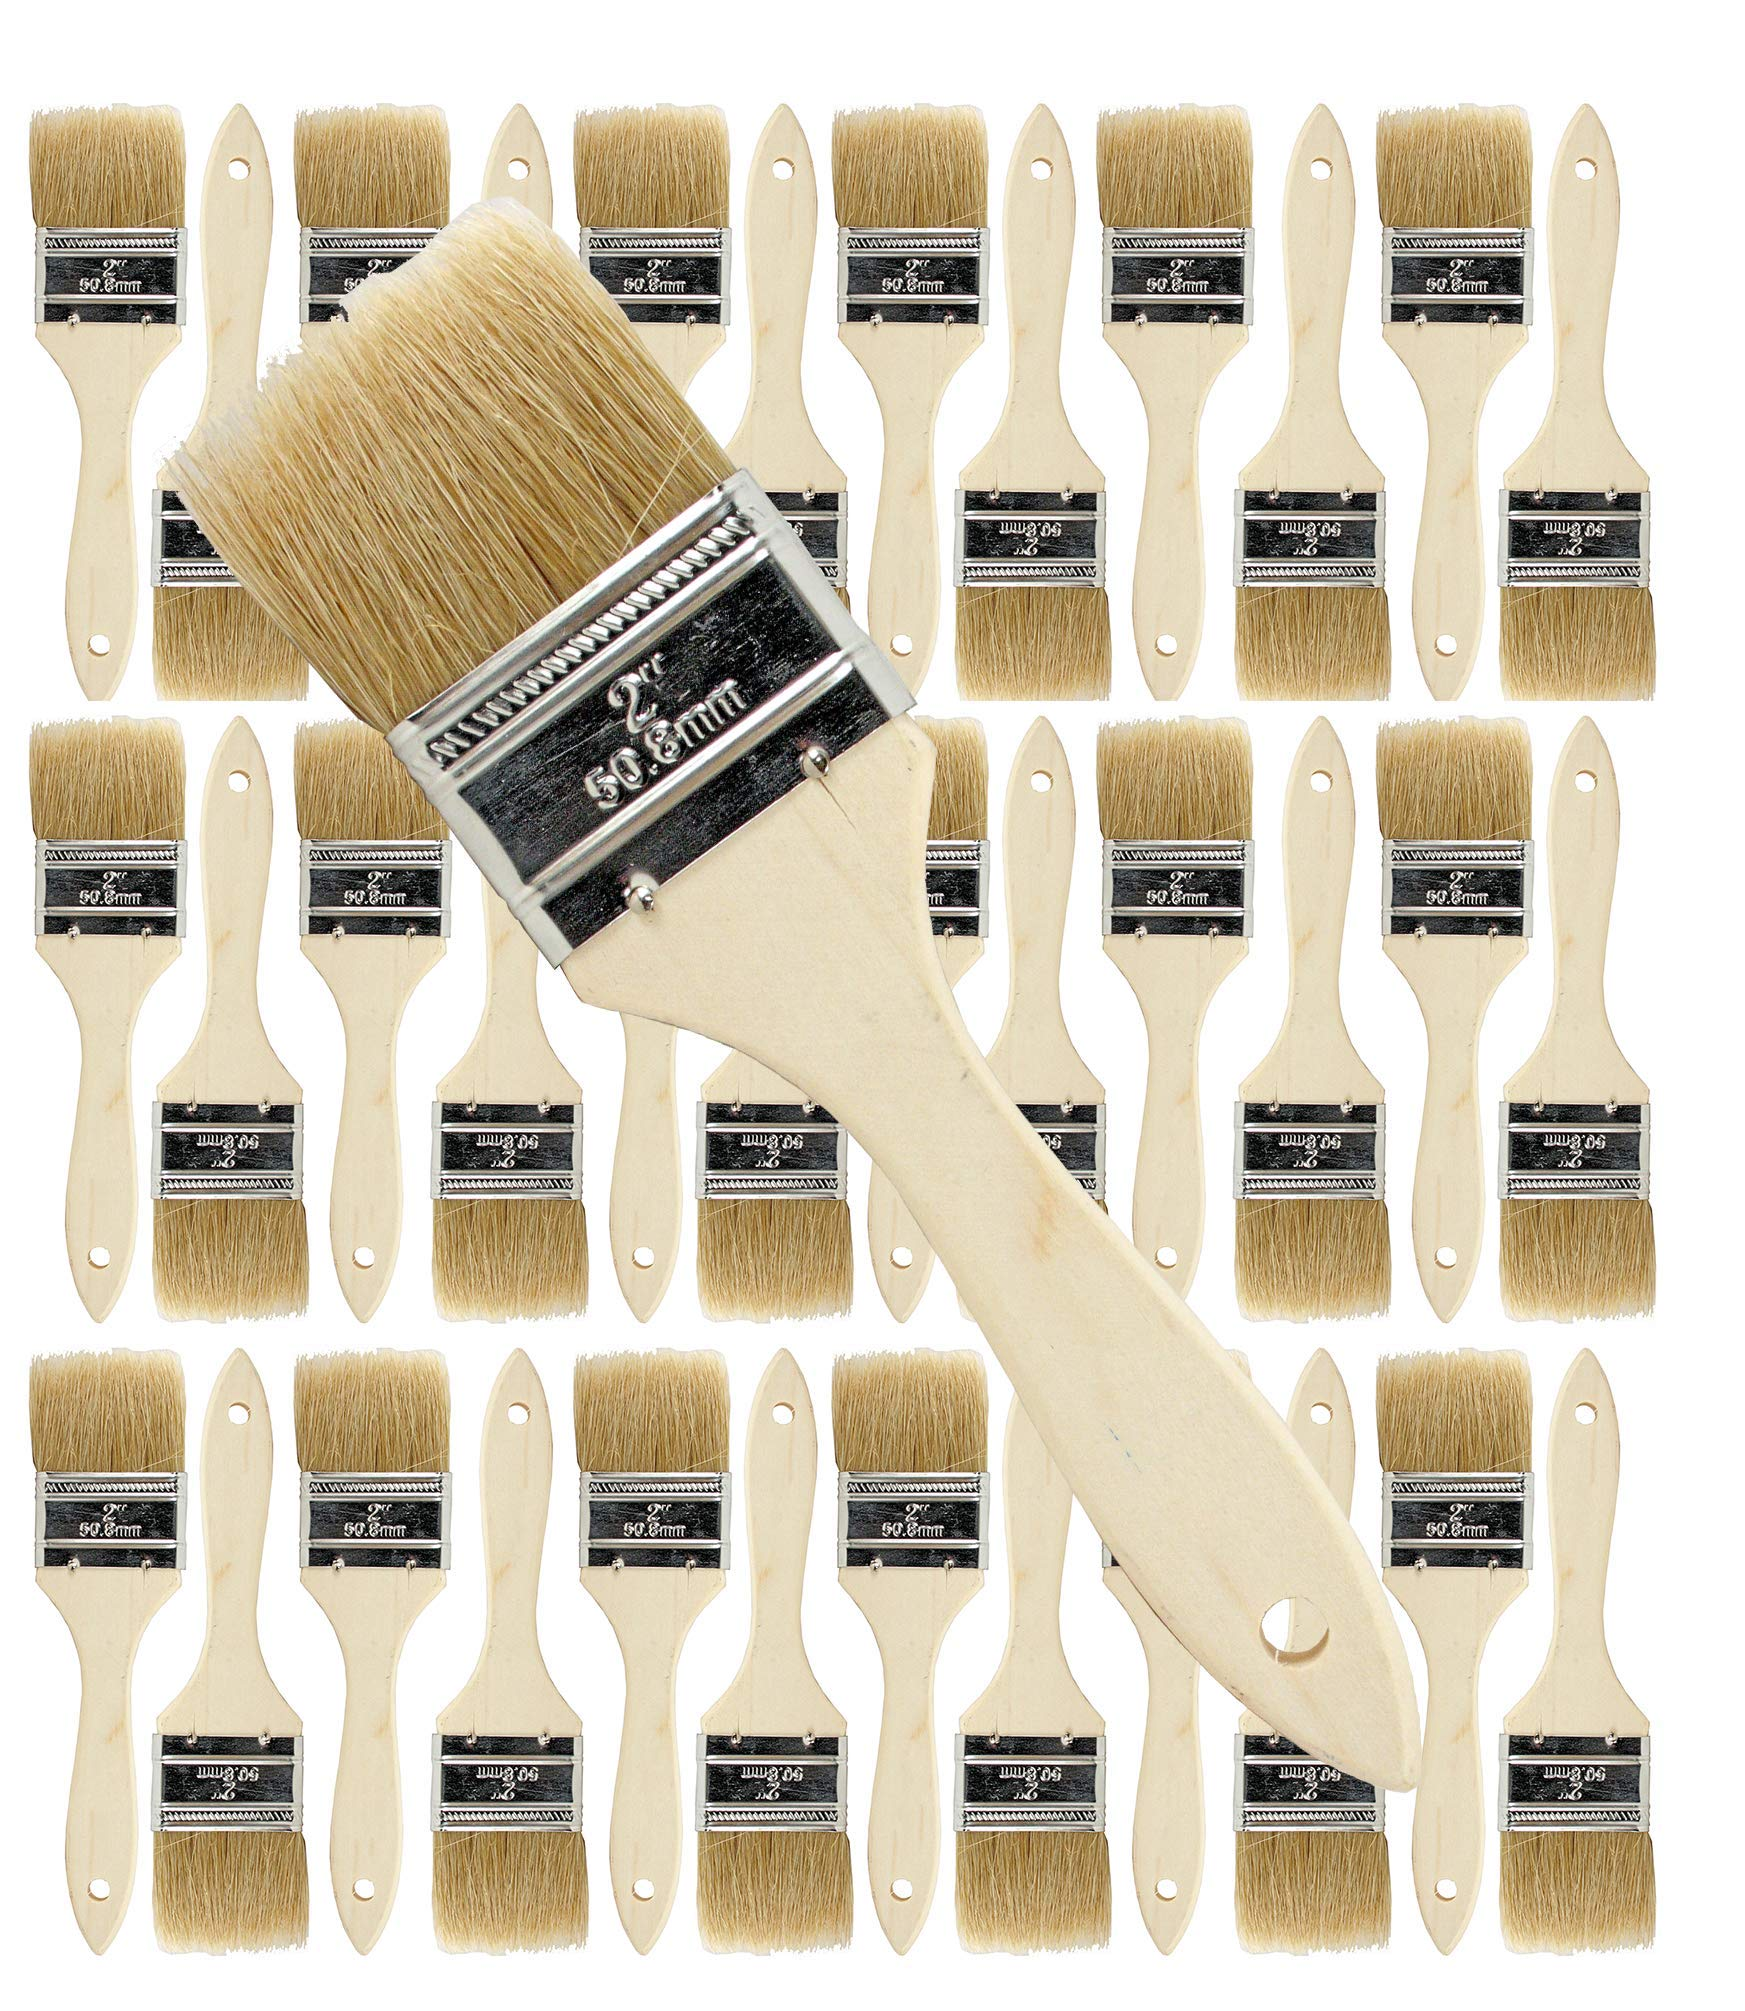 Pro Grade - Chip Paint Brushes - 36 Ea 2 Inch Chip Paint Brush by Pro-Grade